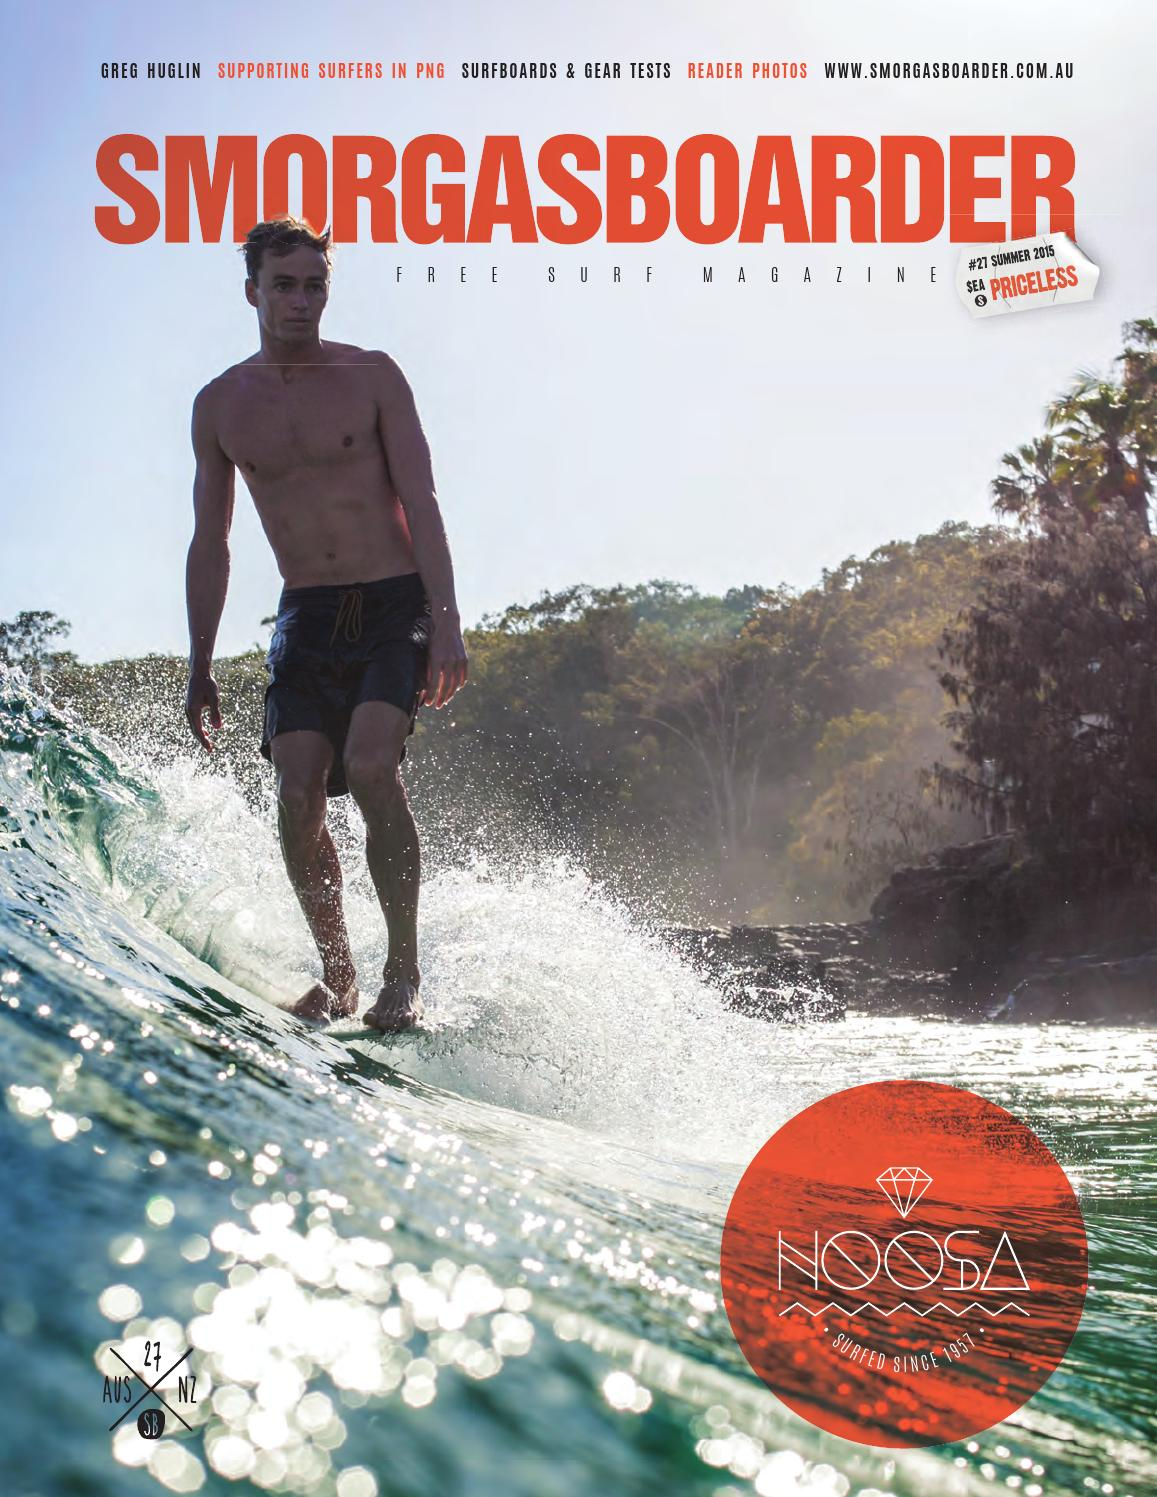 be47539f7da4 Smorgasboarder Summer 2015 by Smorgasboarder Magazine - issuu